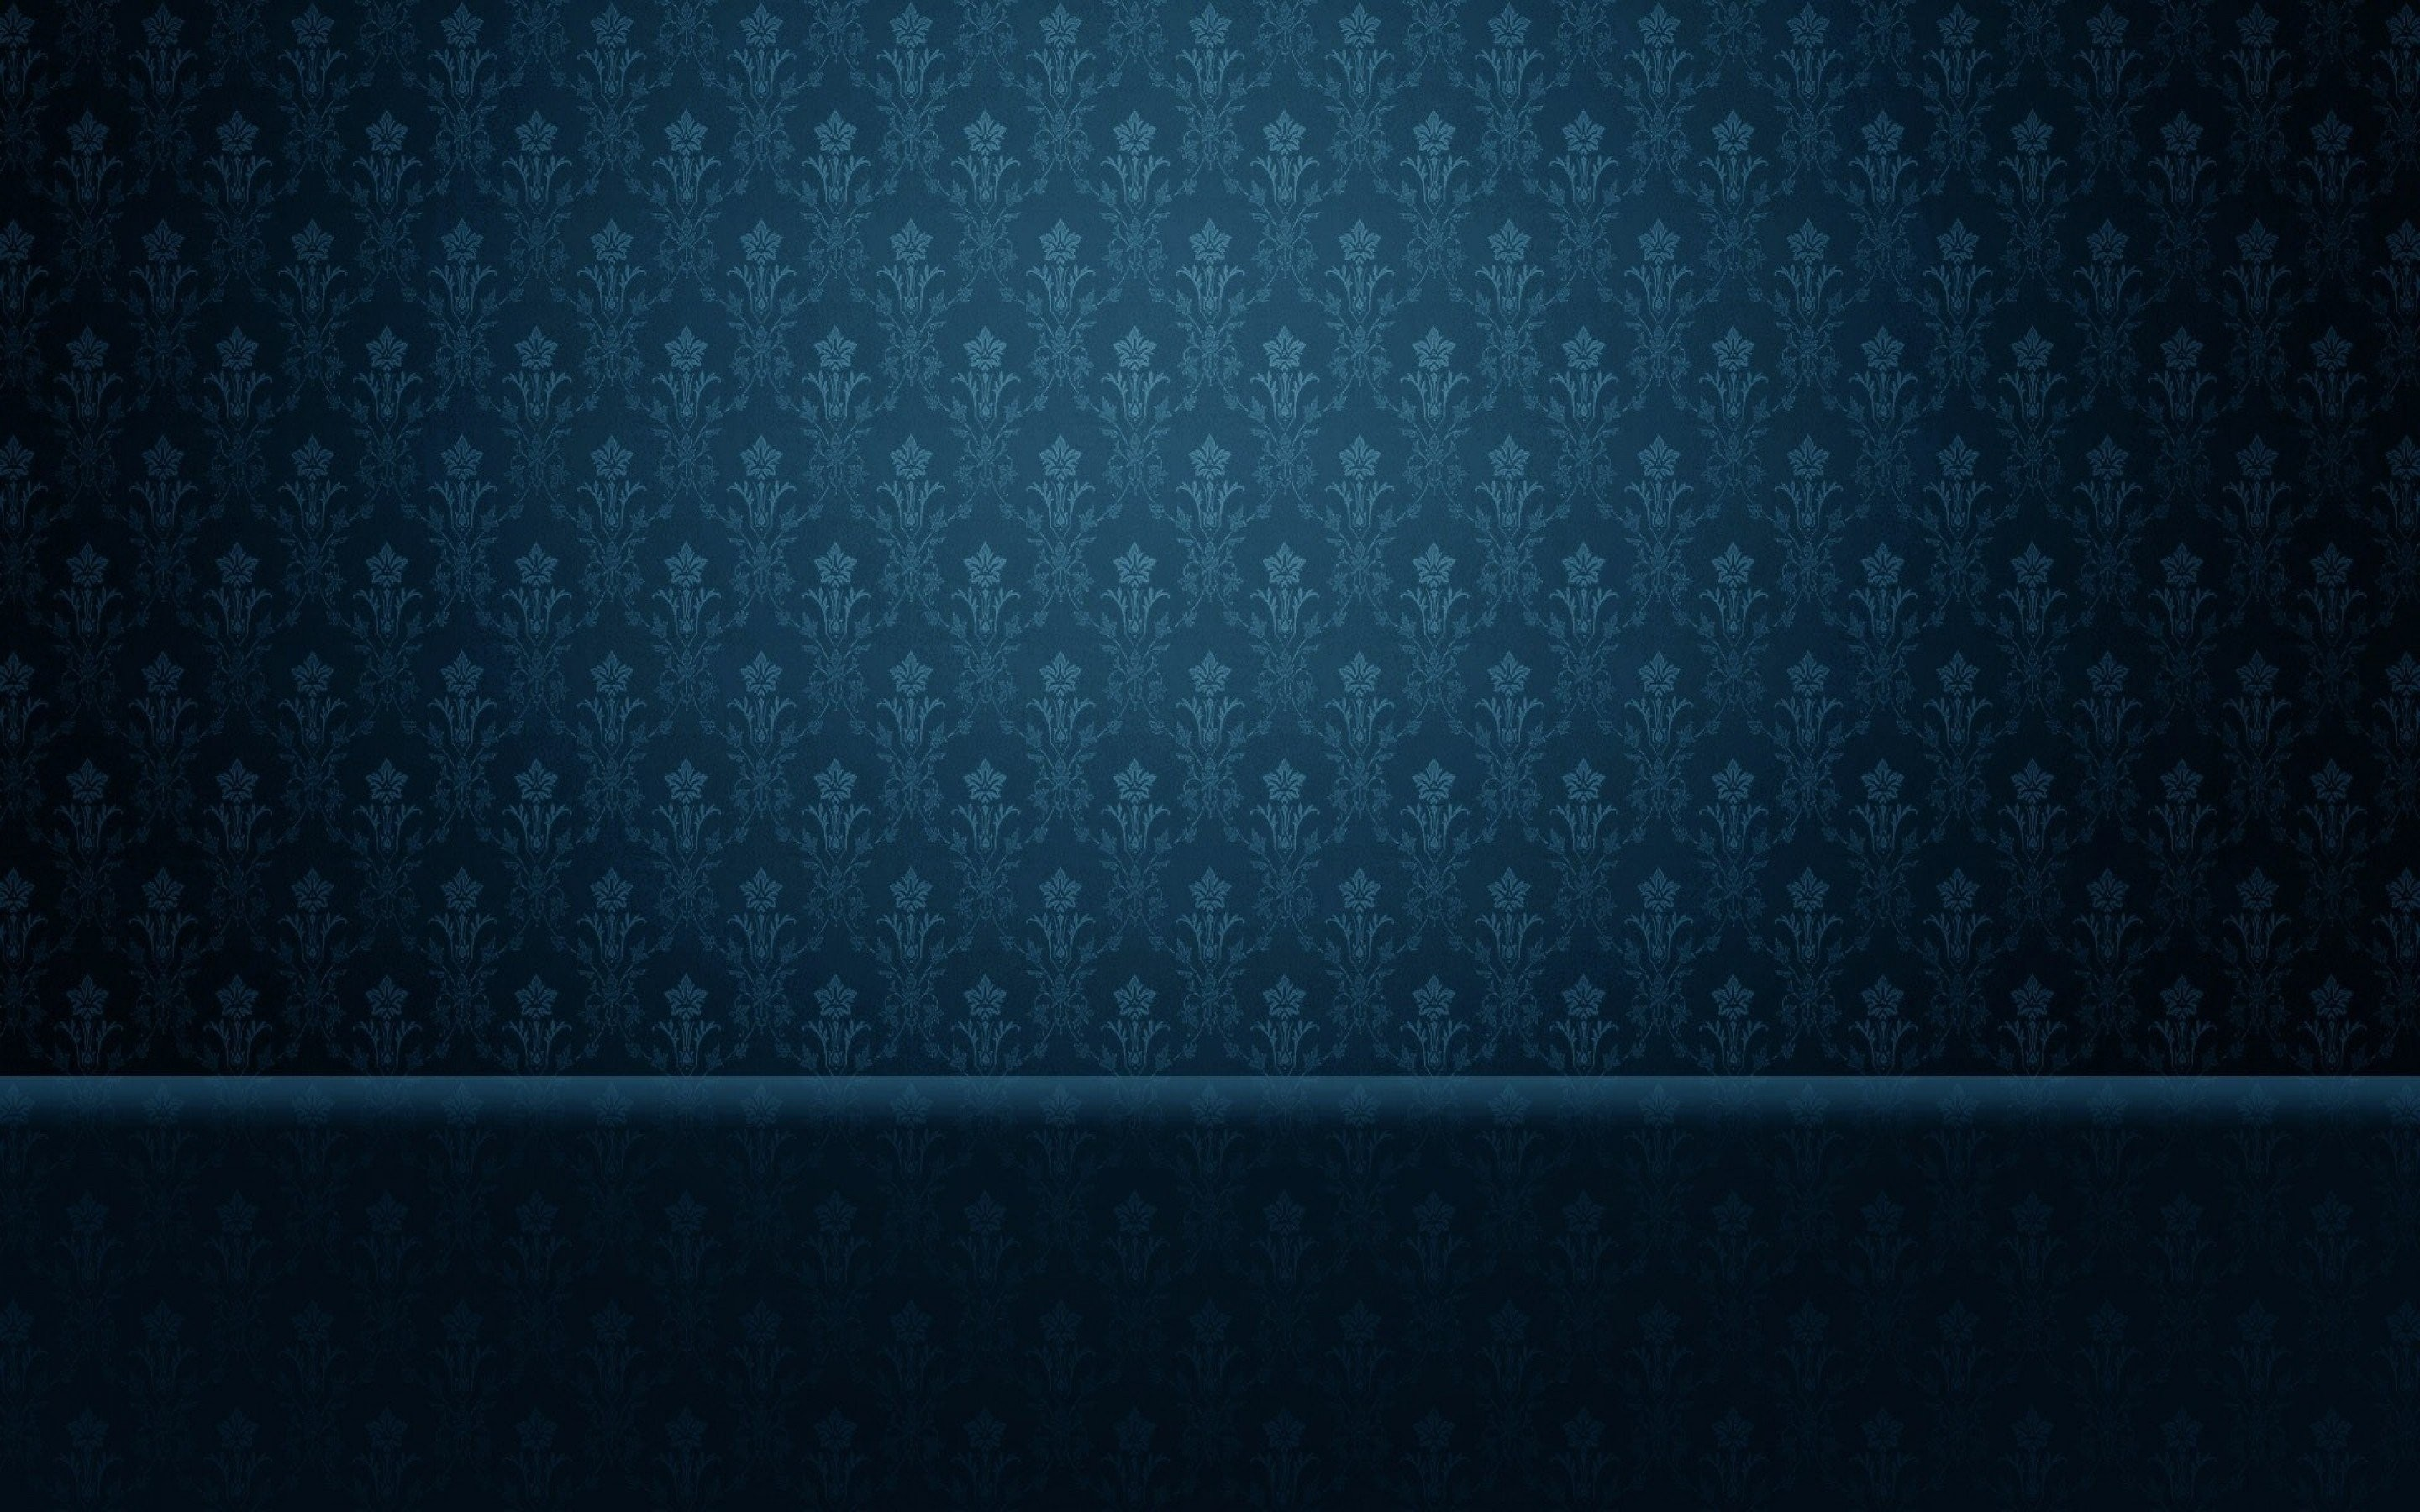 2633x1975 Aluminum Texture Background Download Wallpapers For Table